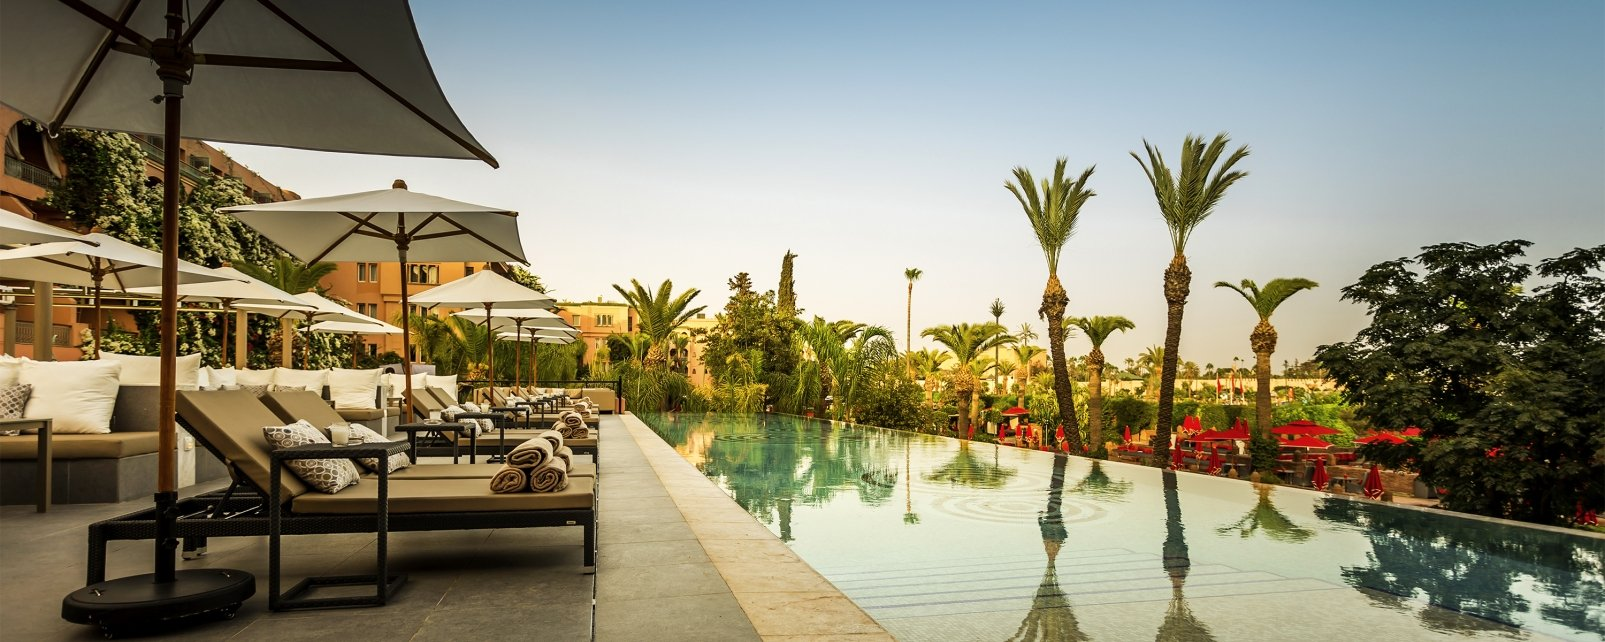 Hotel Marrakech Sofitel Palais Imperial